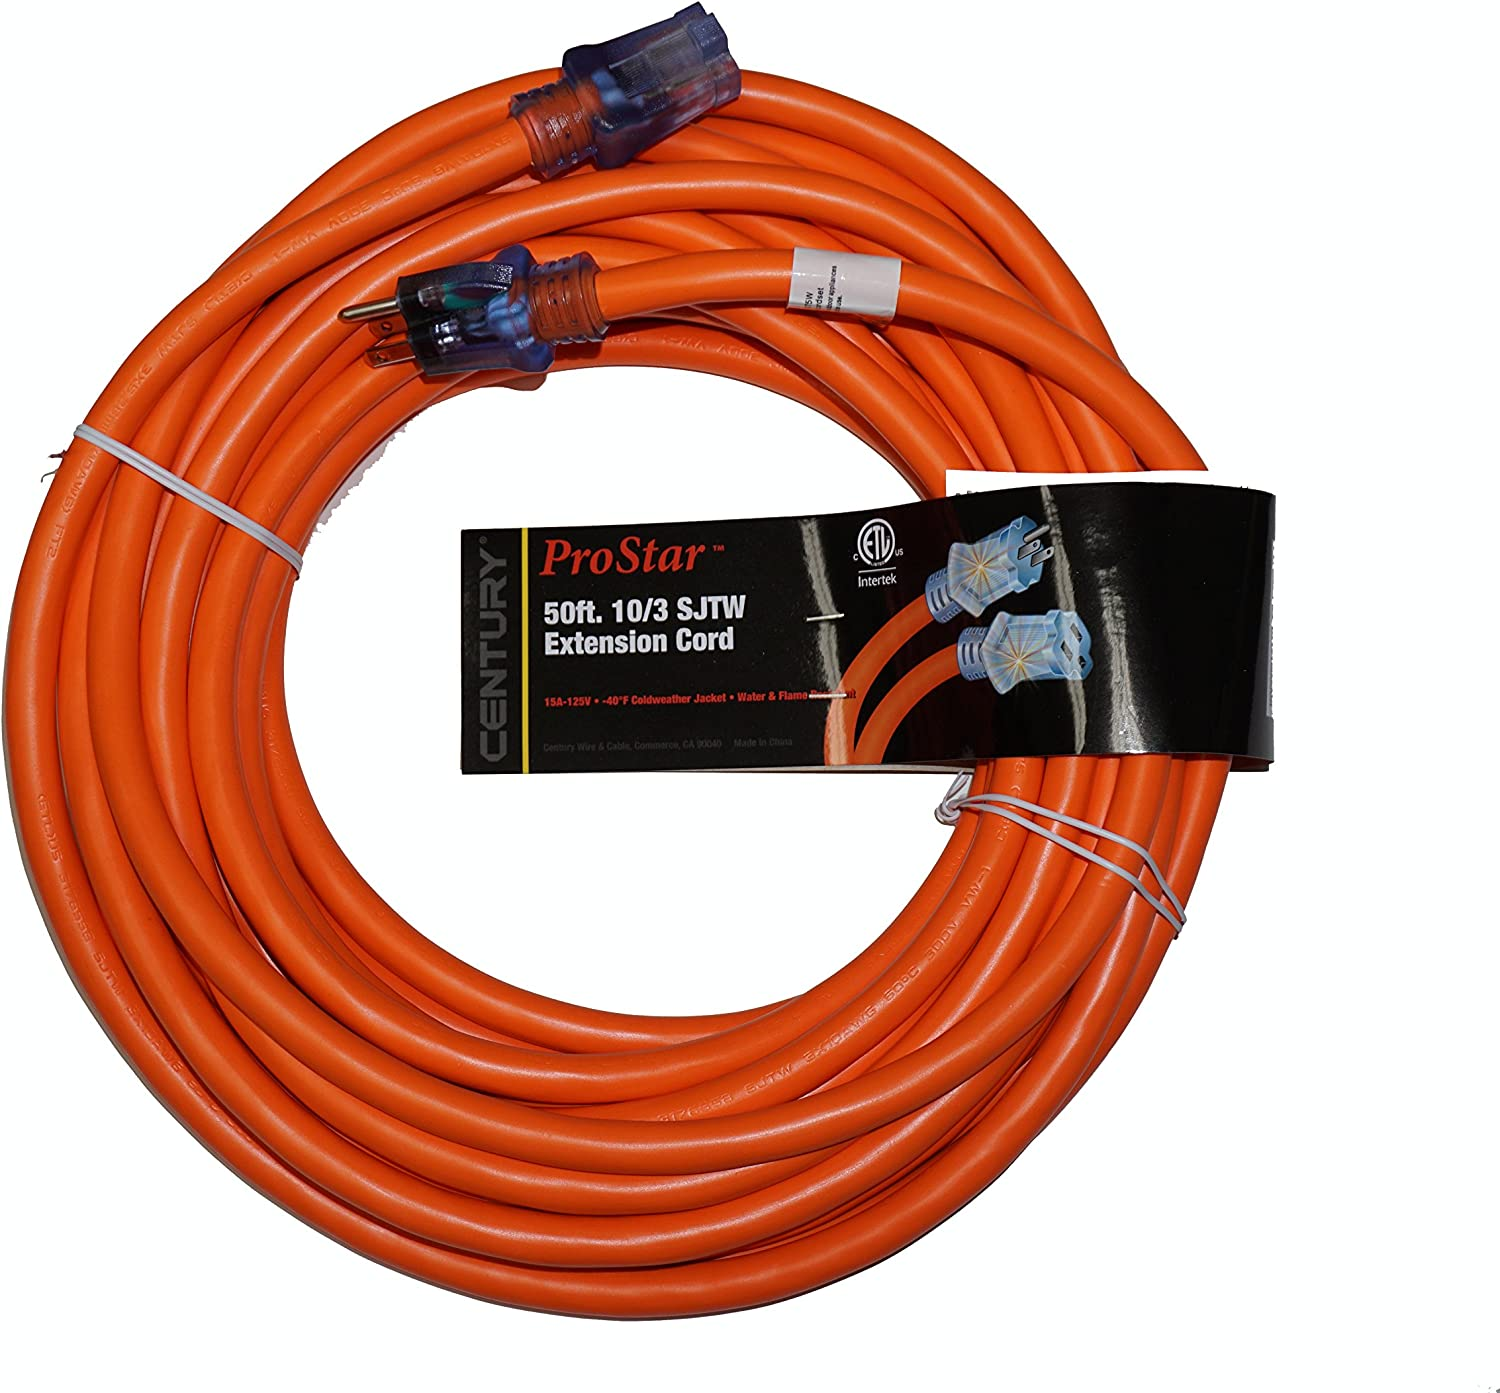 ProStar 10 Gauge Max 84% OFF Free shipping anywhere in the nation SJTW 3 Conductor Extension With Foot 50 Cord Li